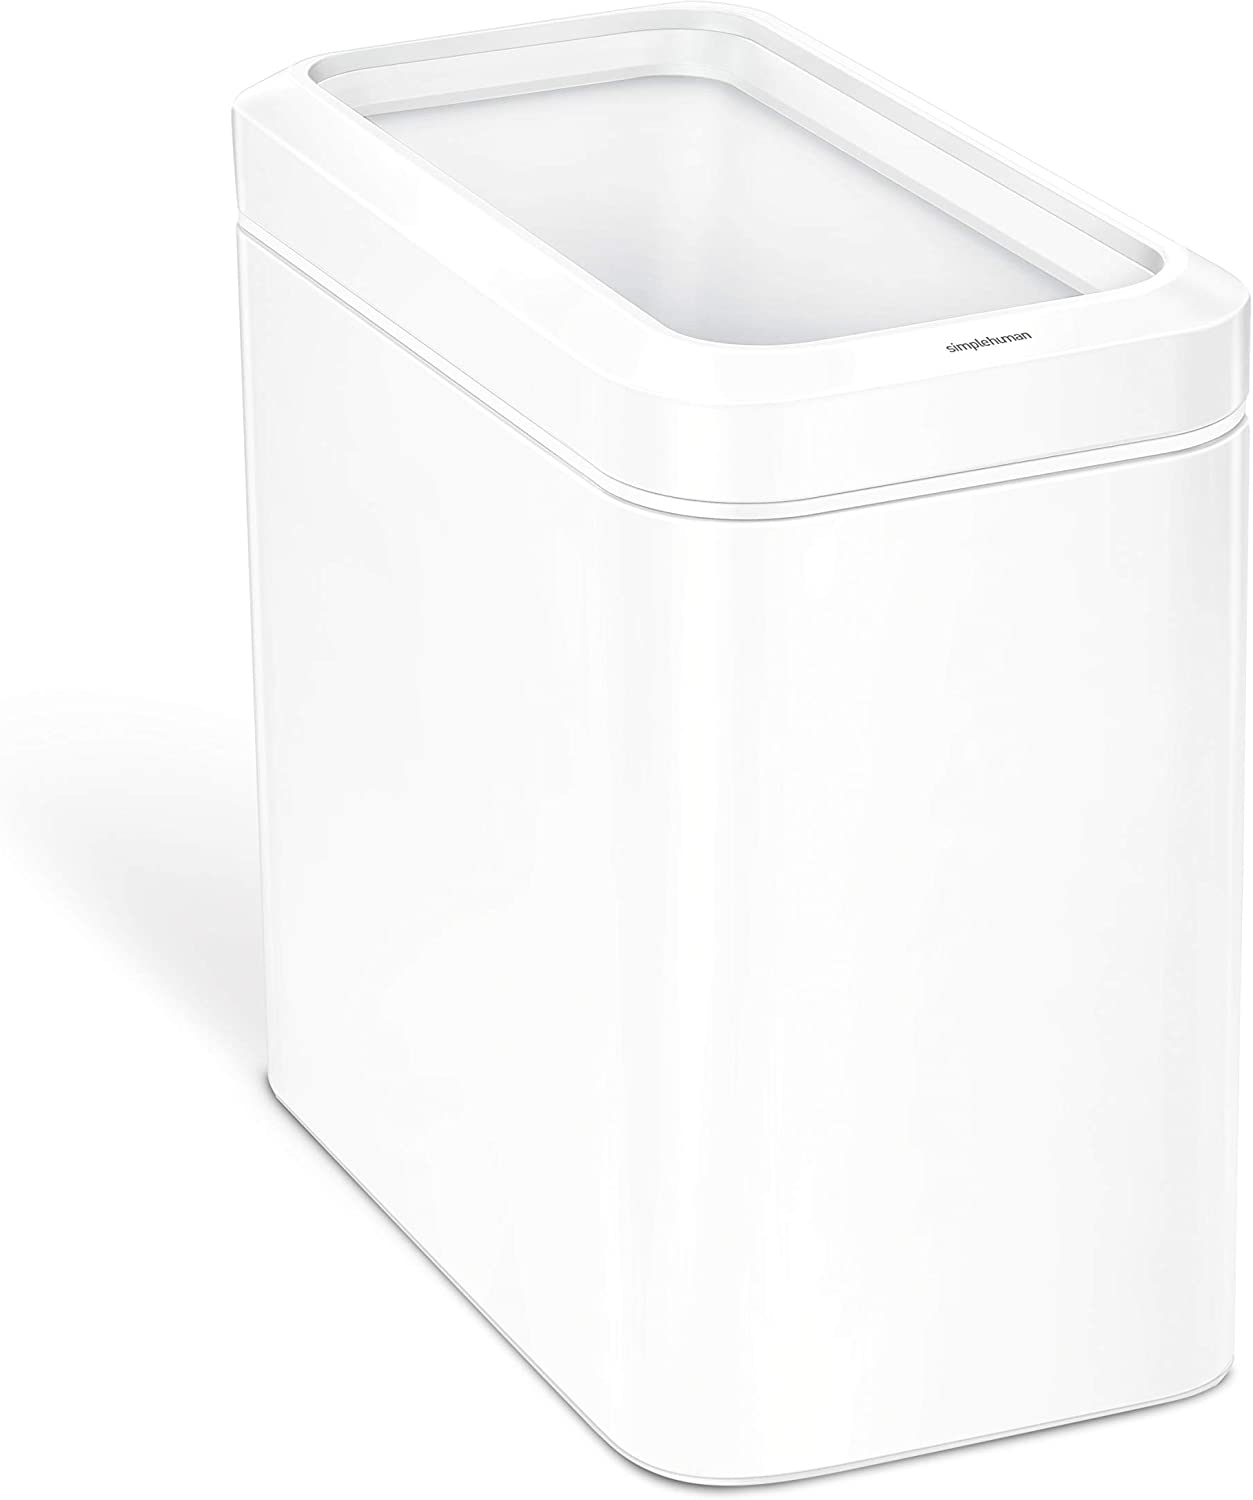 simplehuman 25 Liter / 6.6 Gallon Slim Open Top Trash Can Commercial Grade Heavy Gauge, White Stainless Steel